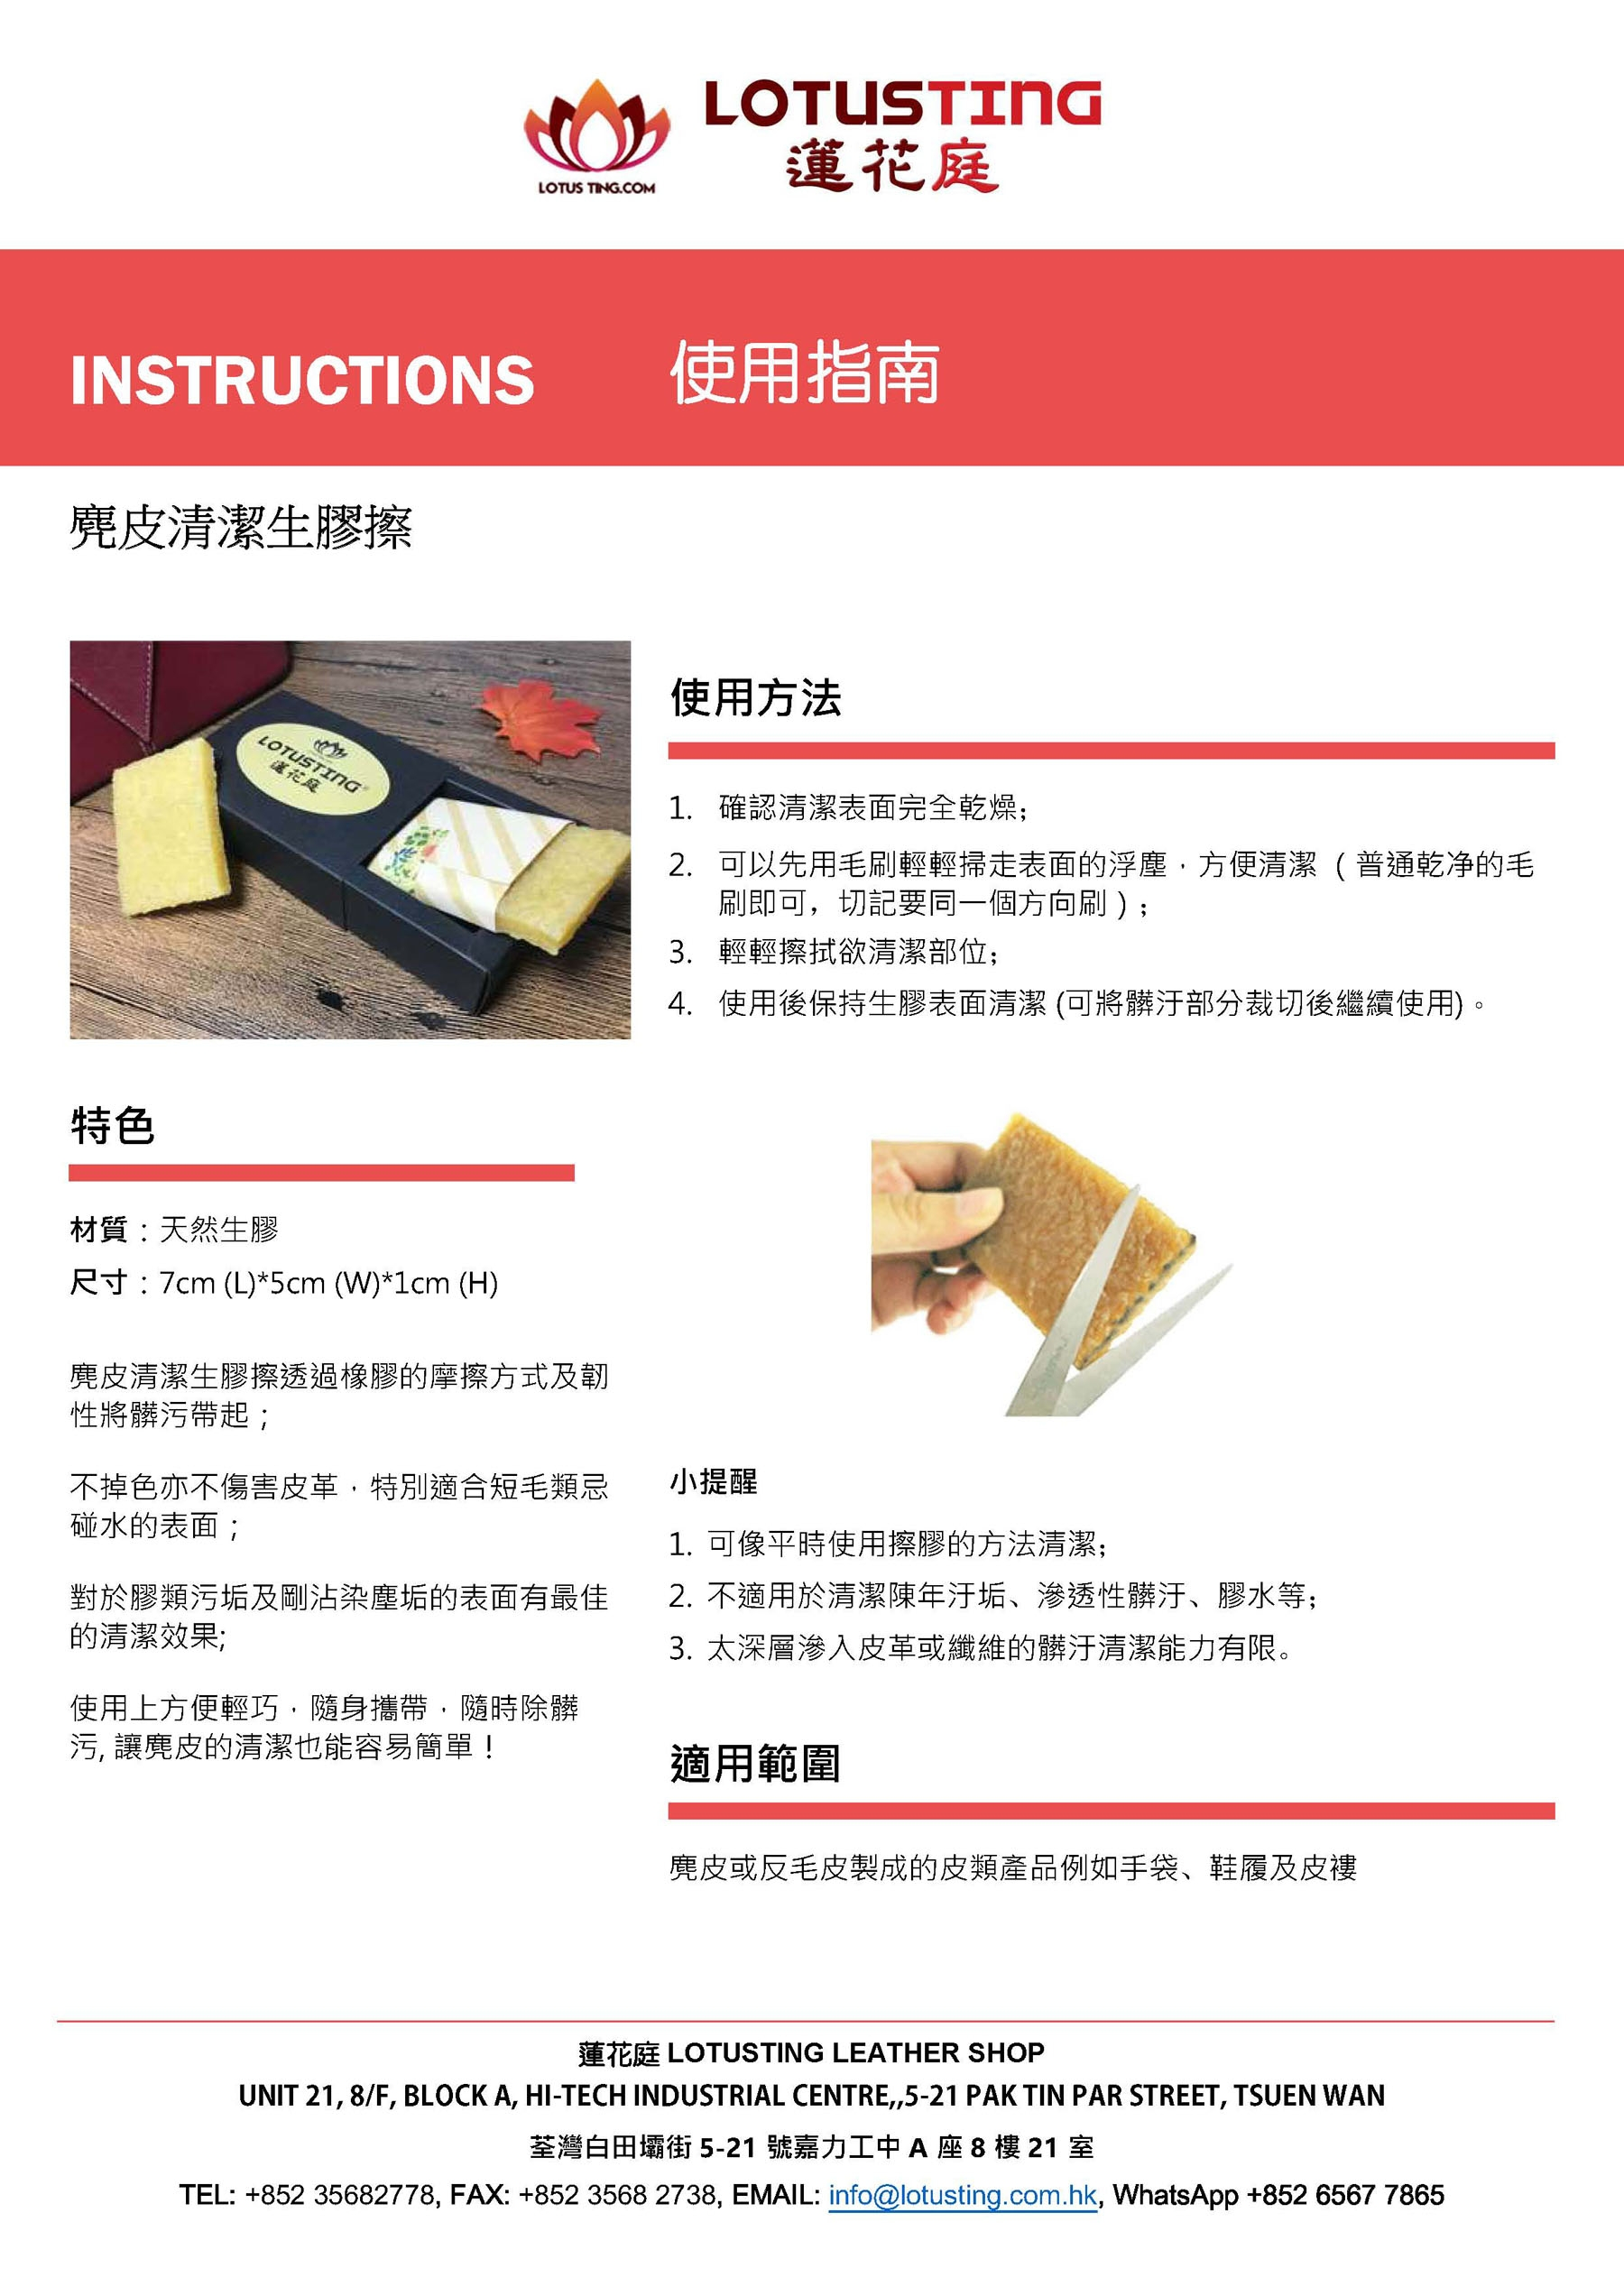 Raw Rubber Instruction in Chinese